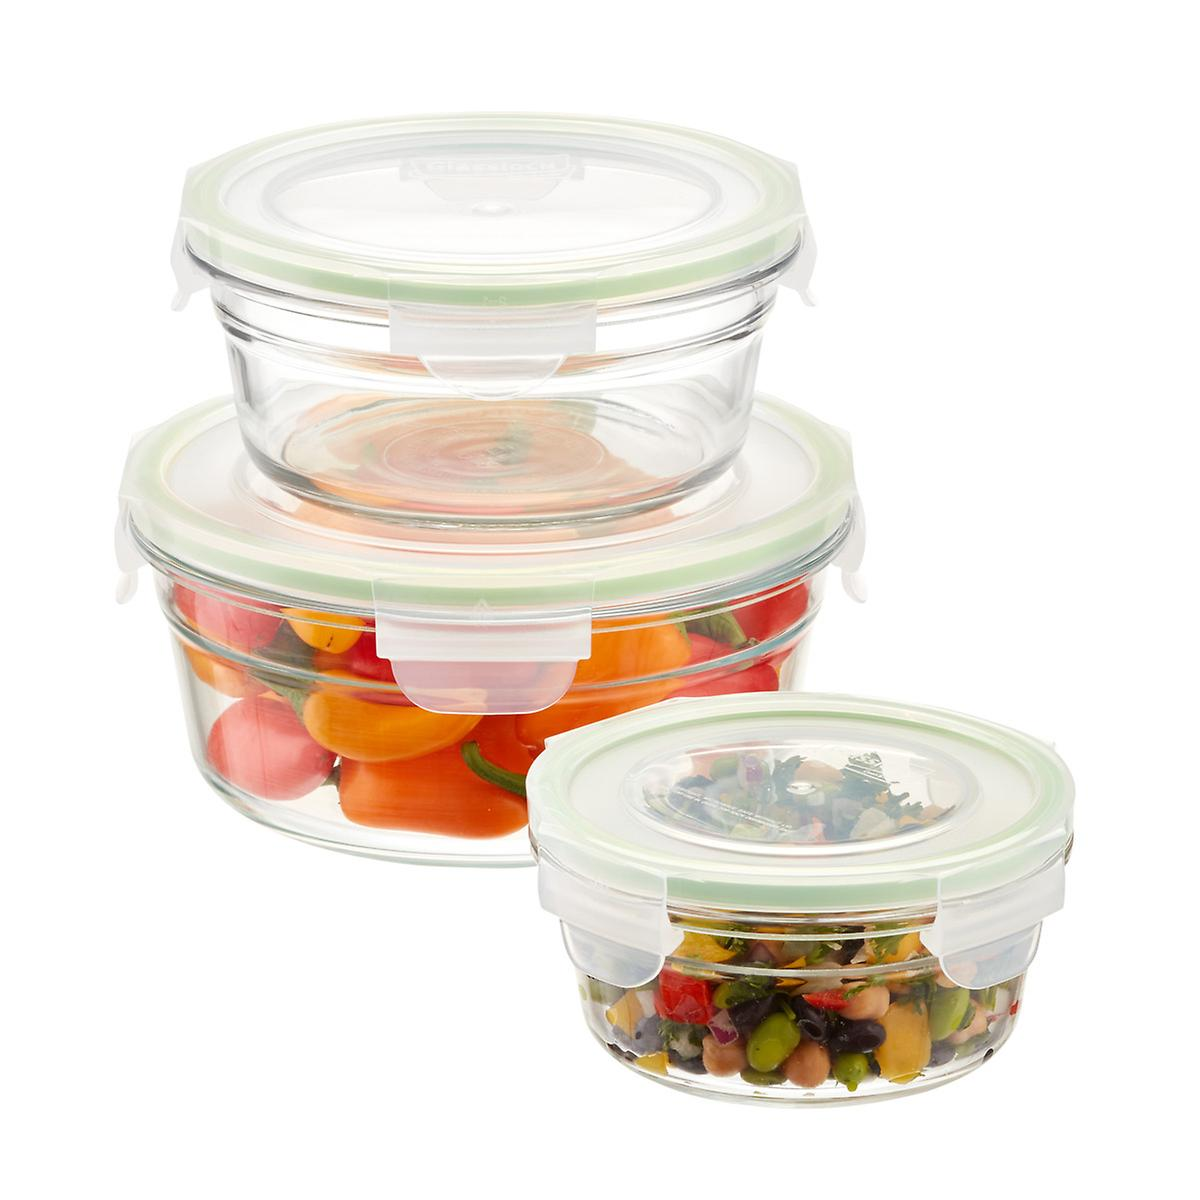 Glasslock Round Food Containers with Lids ...